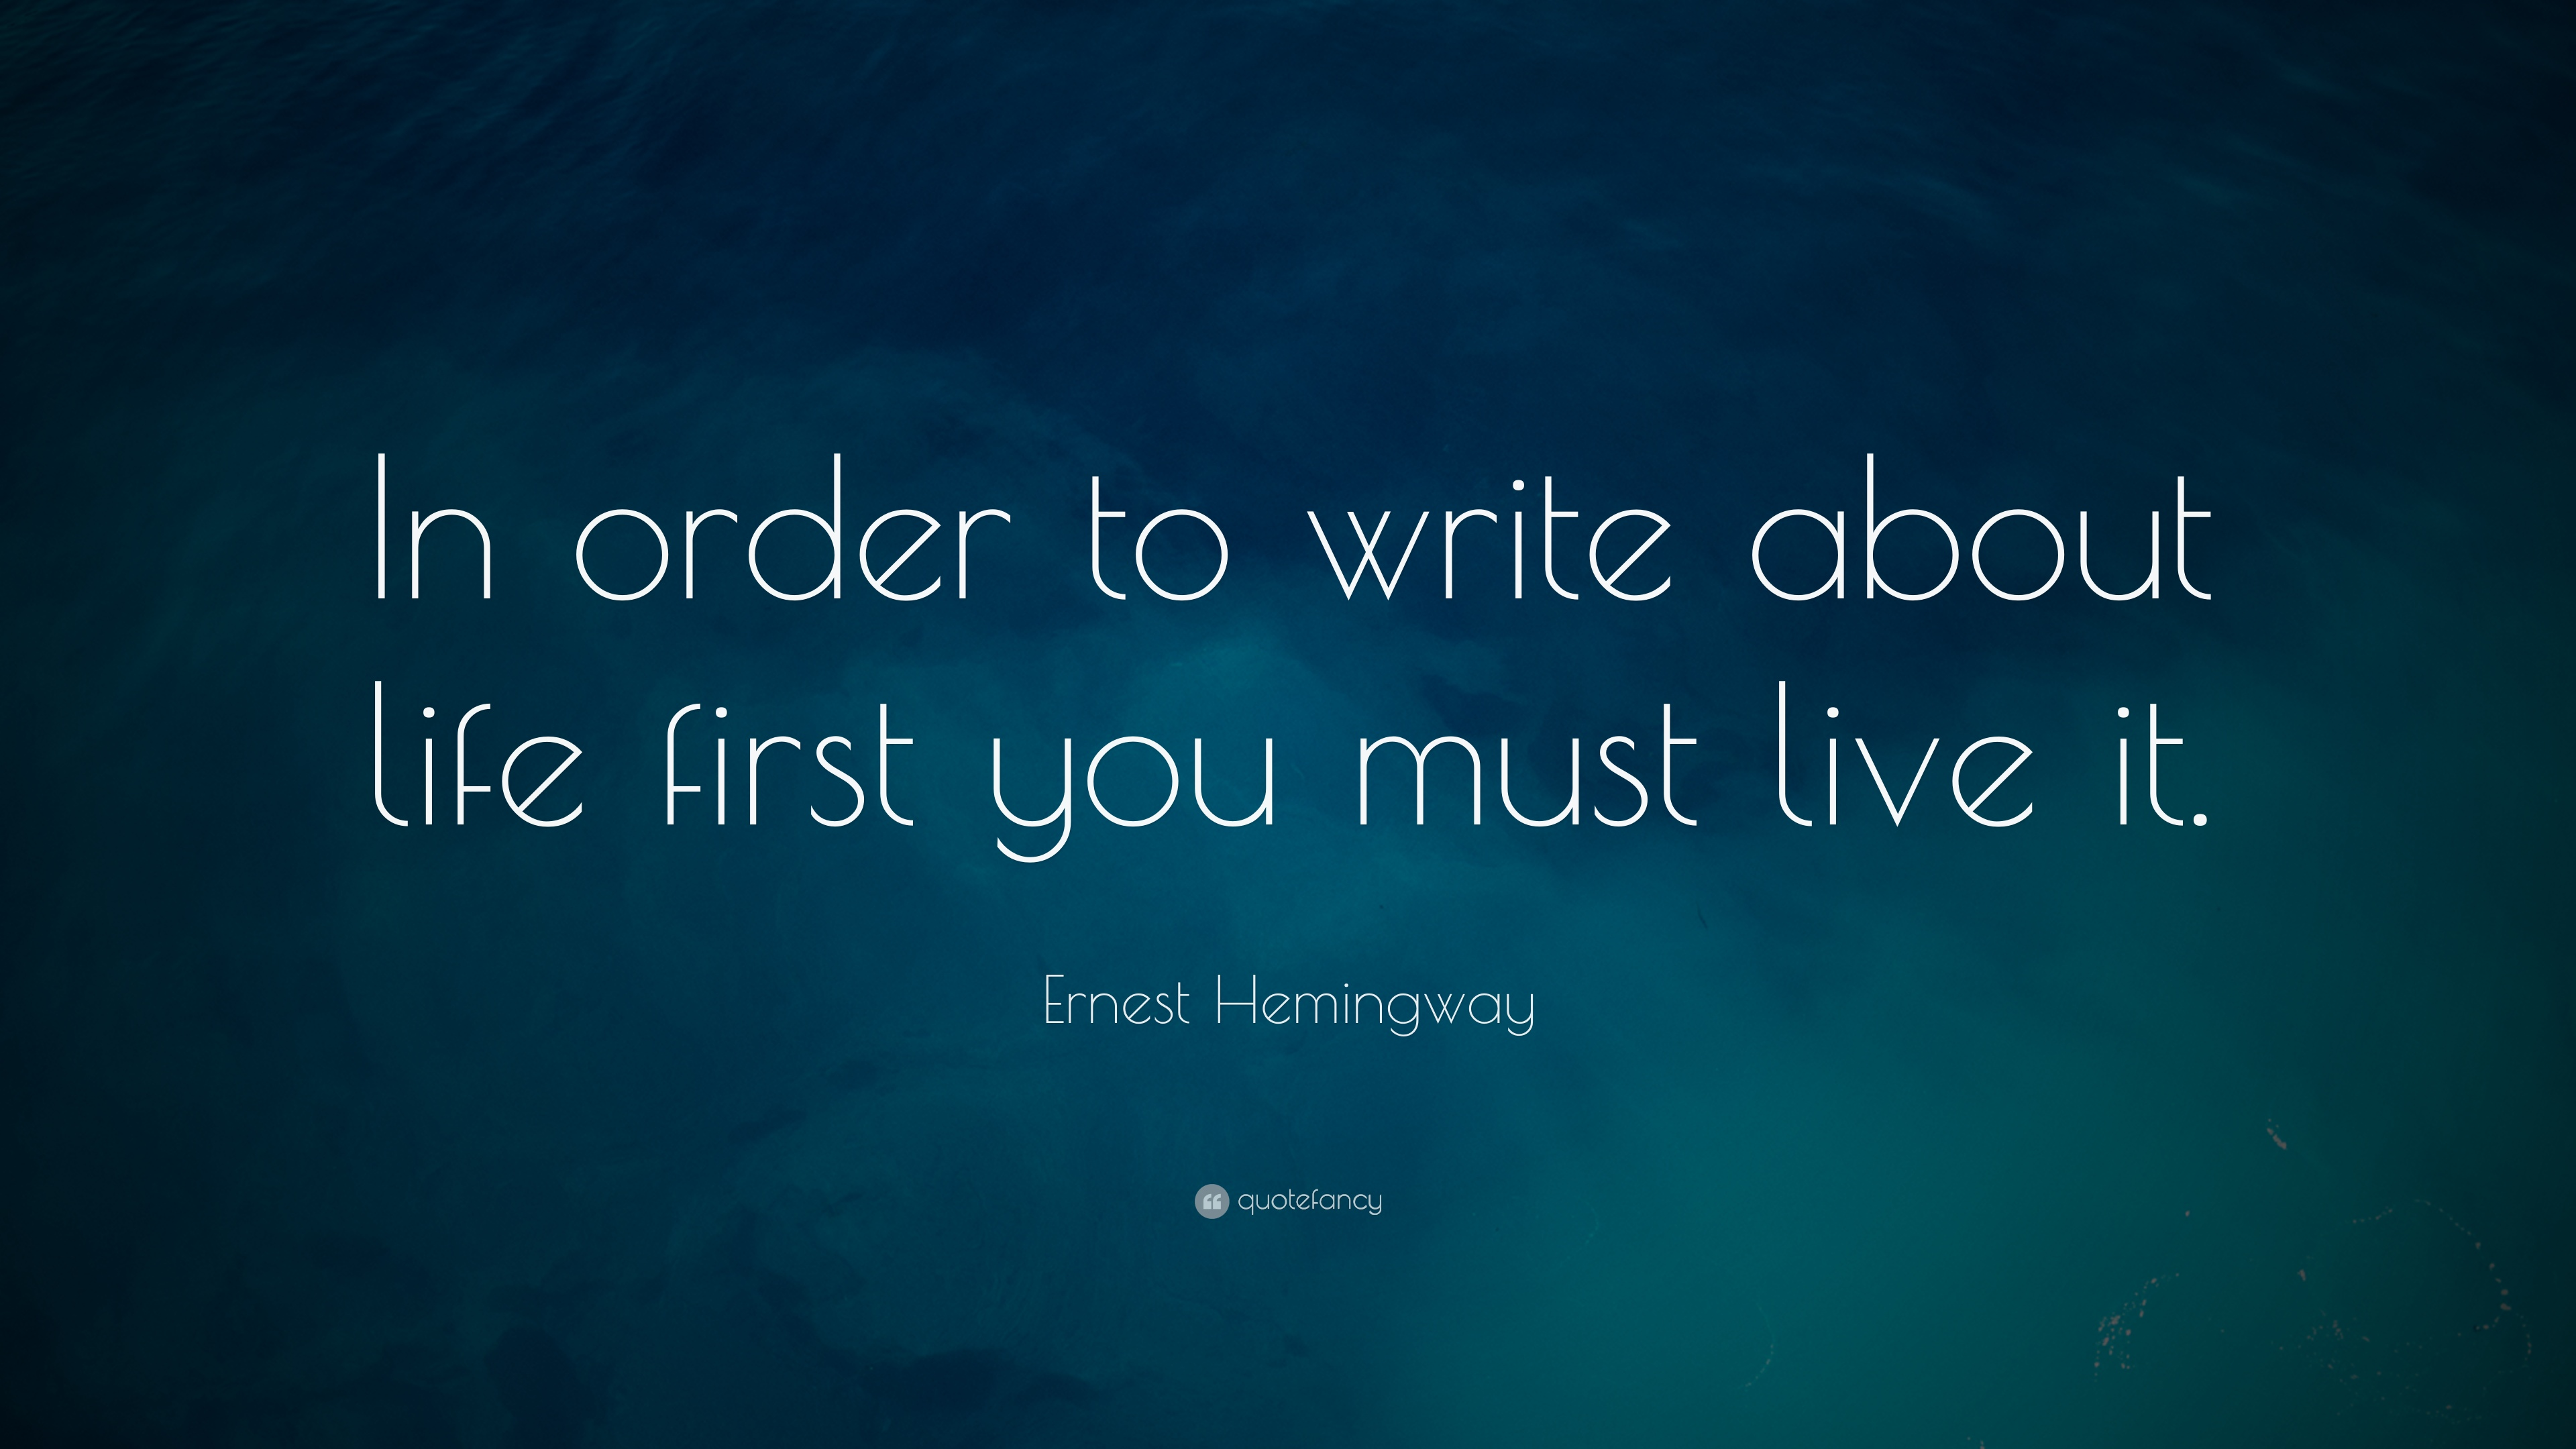 the early life and writing career of ernest hemingway Ernest hemingway biography synopsis ernest hemingway born in 1899 was an american author and journalist his distinctive writing style, characterized by economy and understatement, influenced 20th-century fiction, as did his life of adventure and public image.